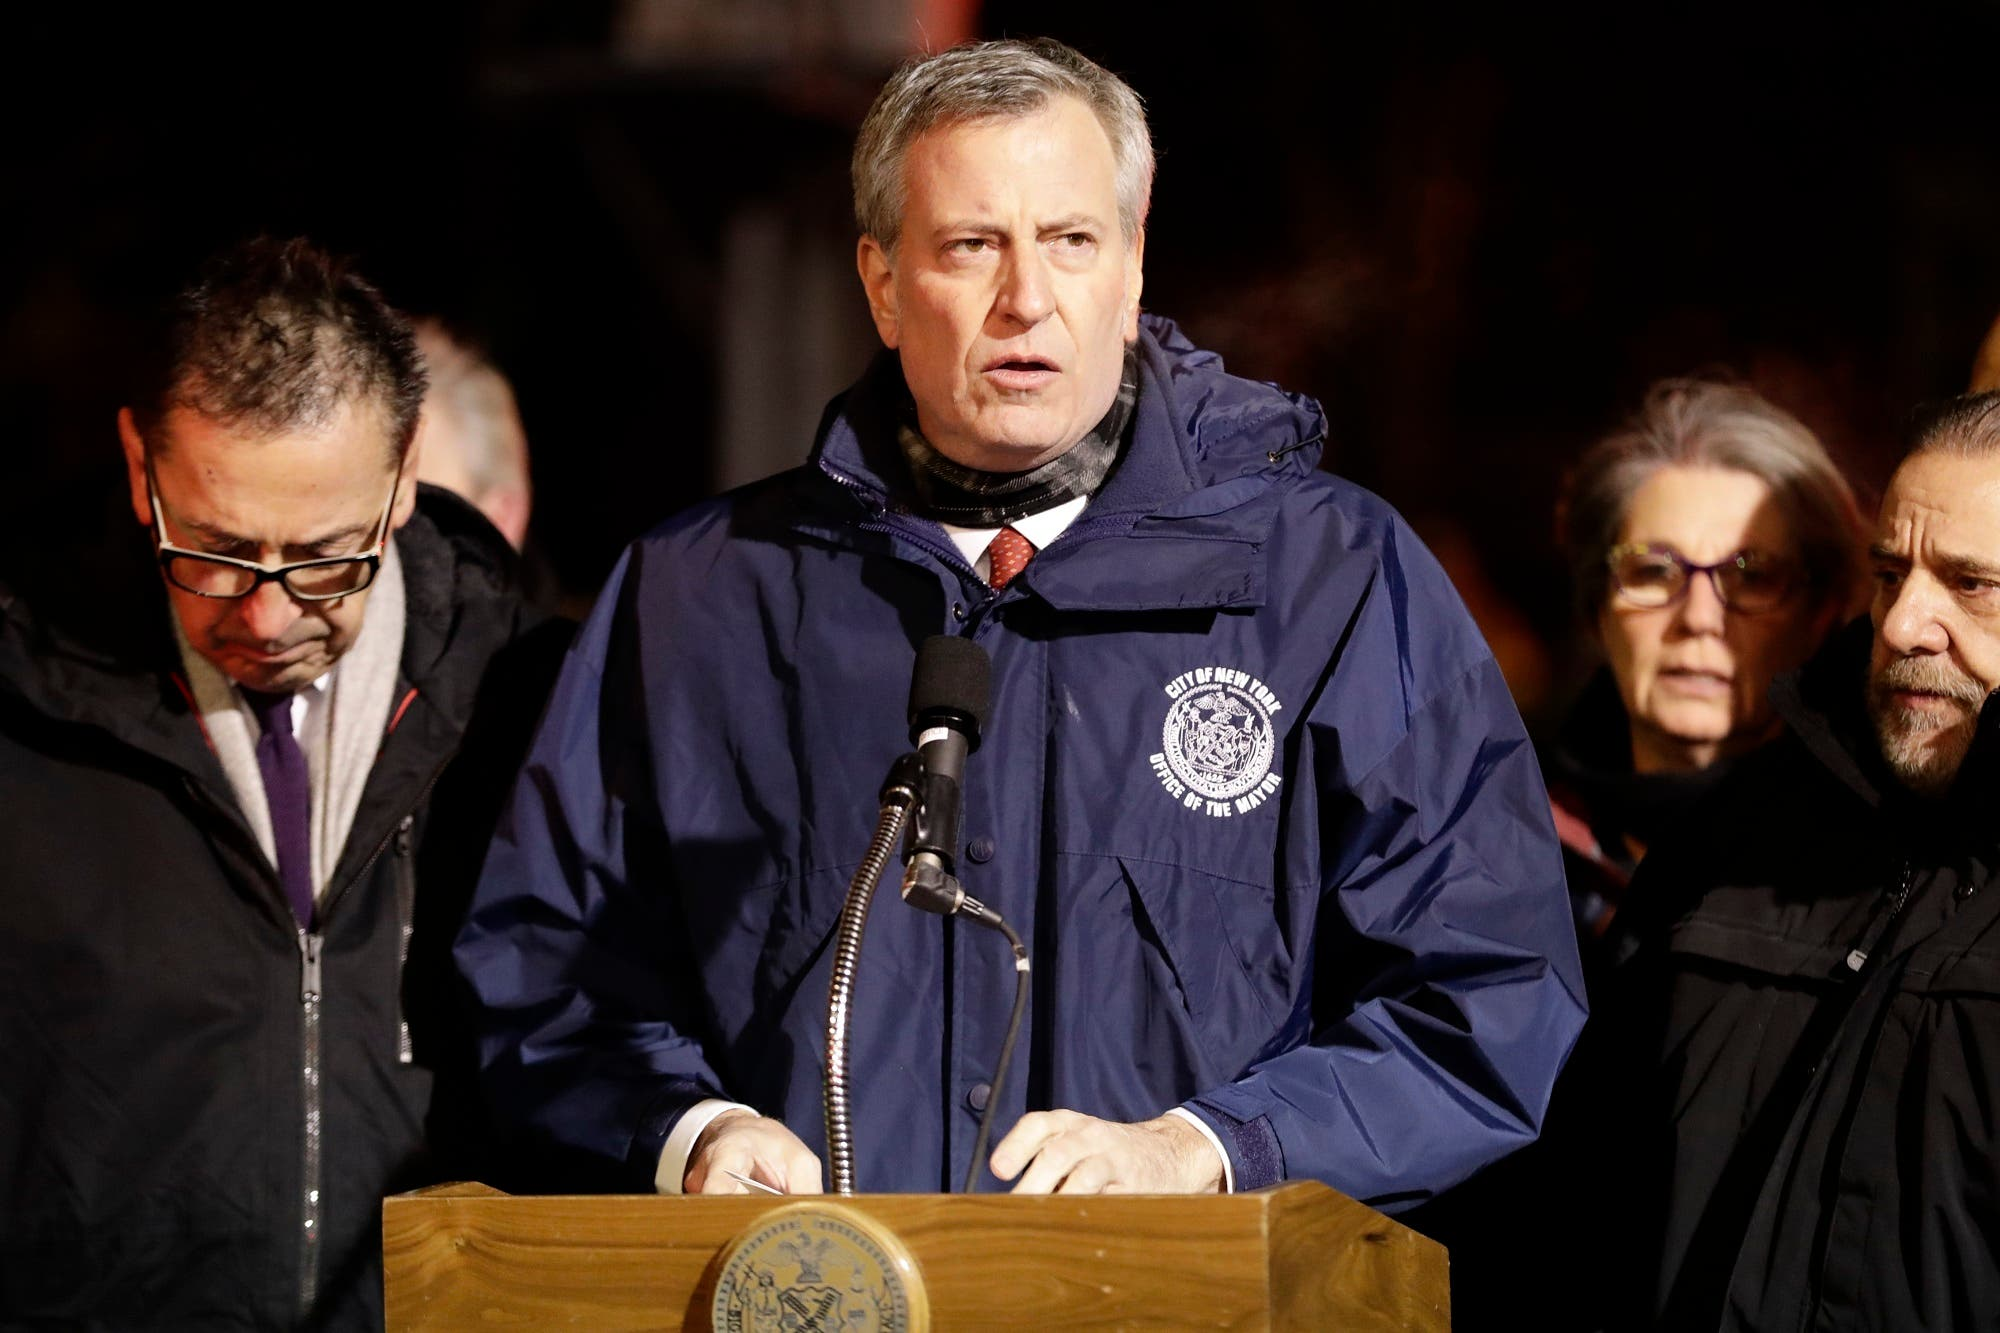 New York City Mayor Bill de Blasio speaks during a news conference after fire crews responded to a building fire on Dec. 28, 2017, in the Bronx borough. (AP)